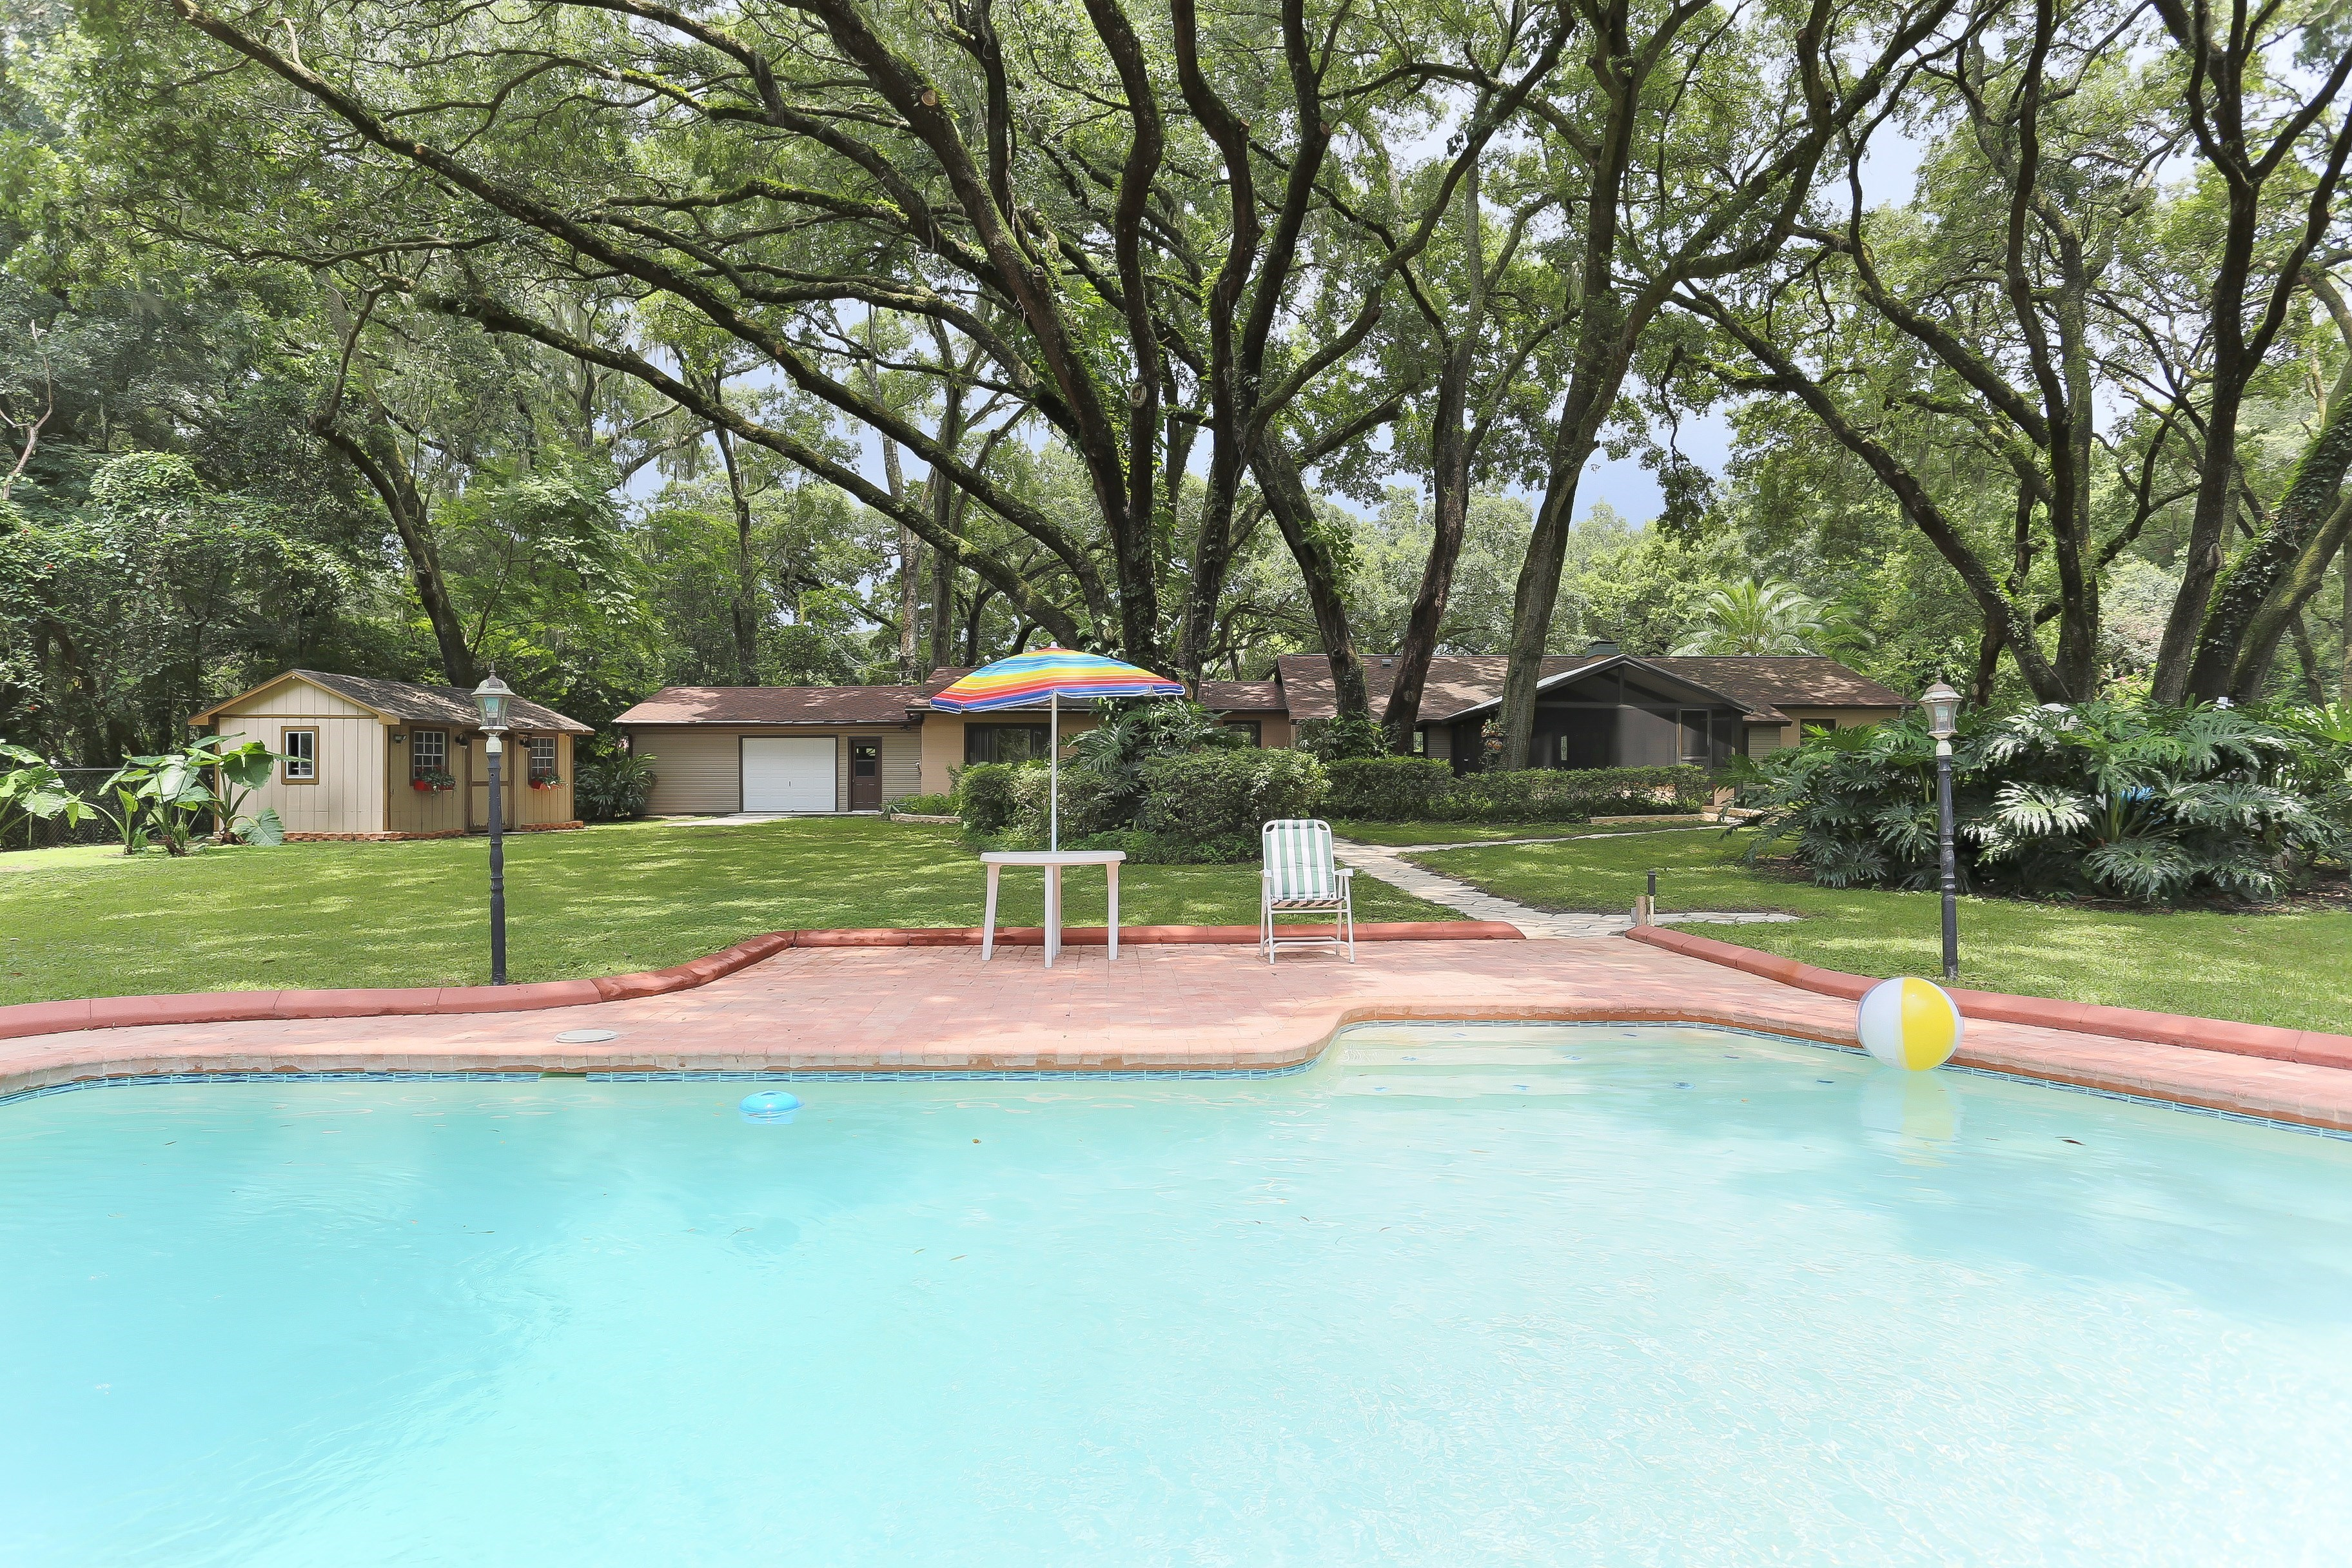 One Acre Pool Homes for Sale in Brandon FL 33510